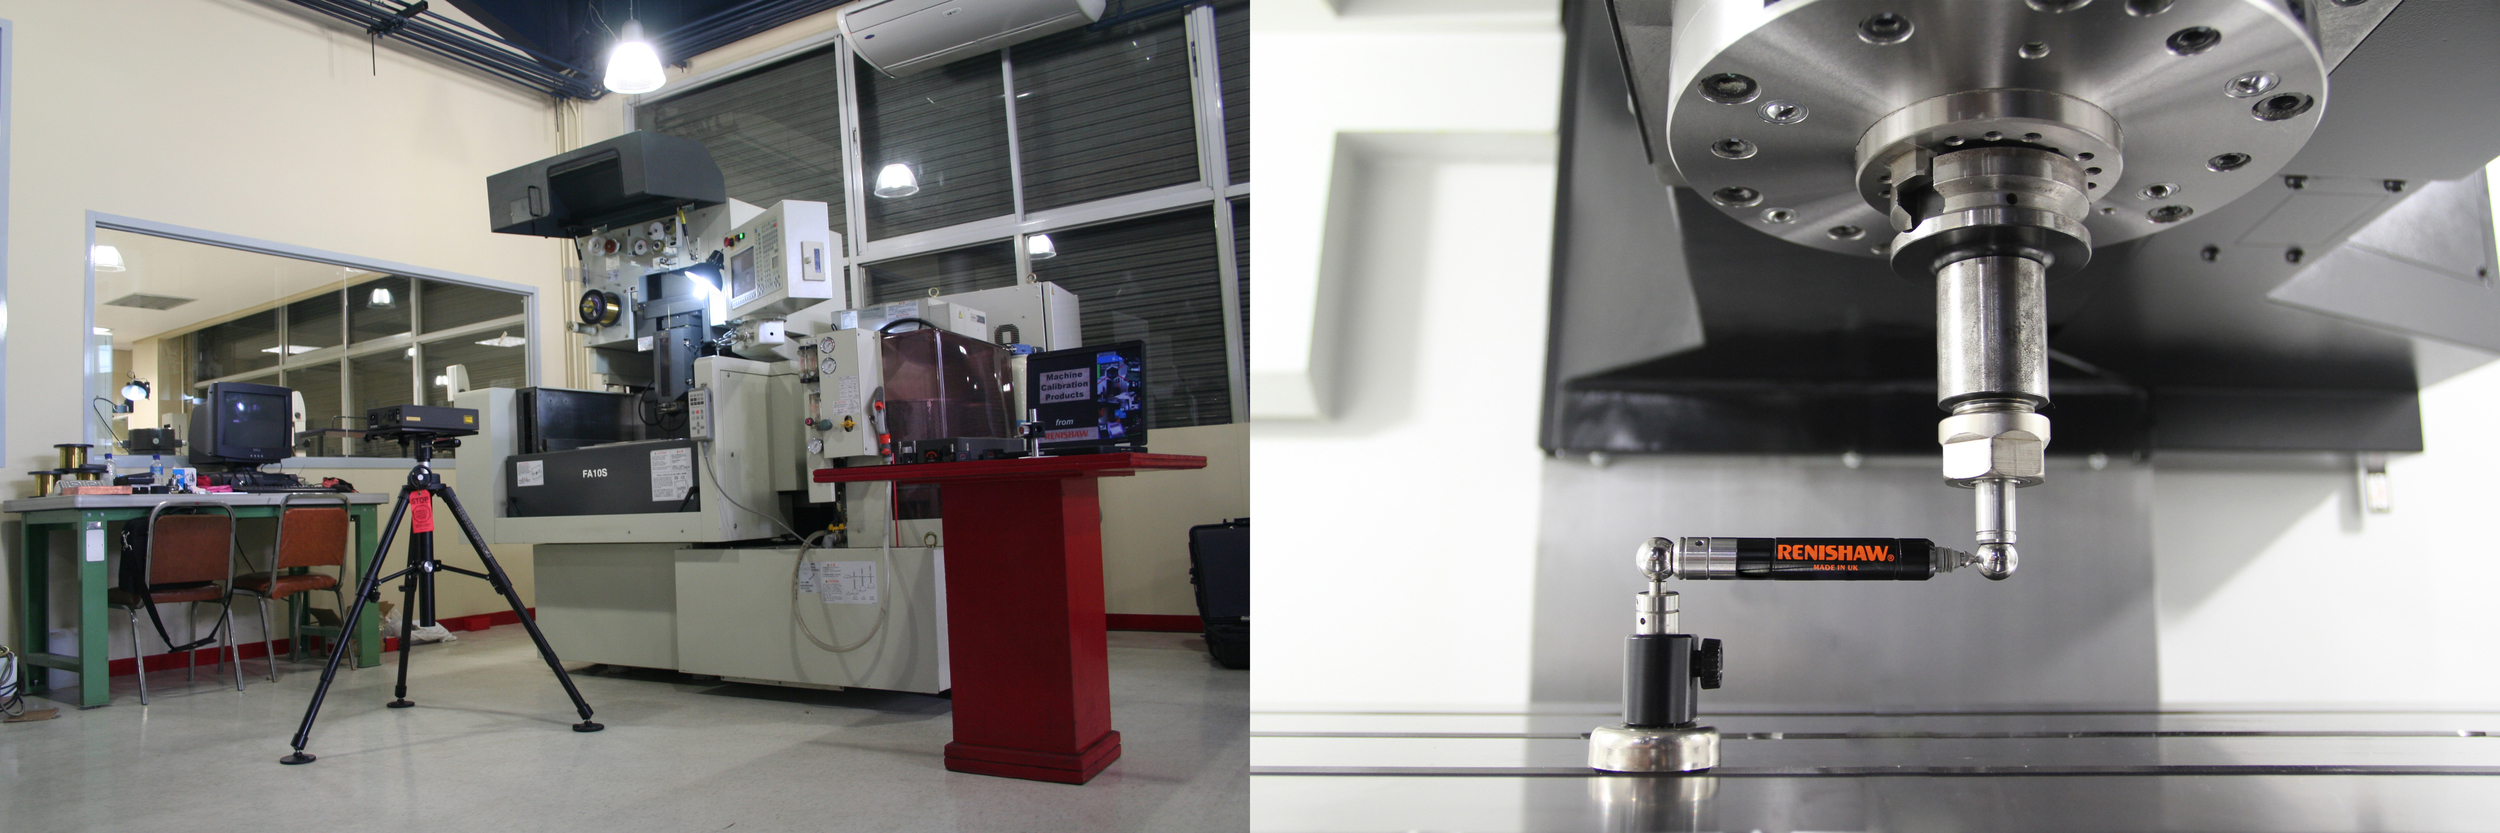 MESCO IS ALSO THE ONLY MITSUBISHI DEALER IN THE WHOLE ASIAN REGION THAT HAS ITS OWN RENISHAW LASER AND BALL BAR CALIBRATION SYSTEM USED IN WEDMS   AND OTHER MACHINE TOOLS.